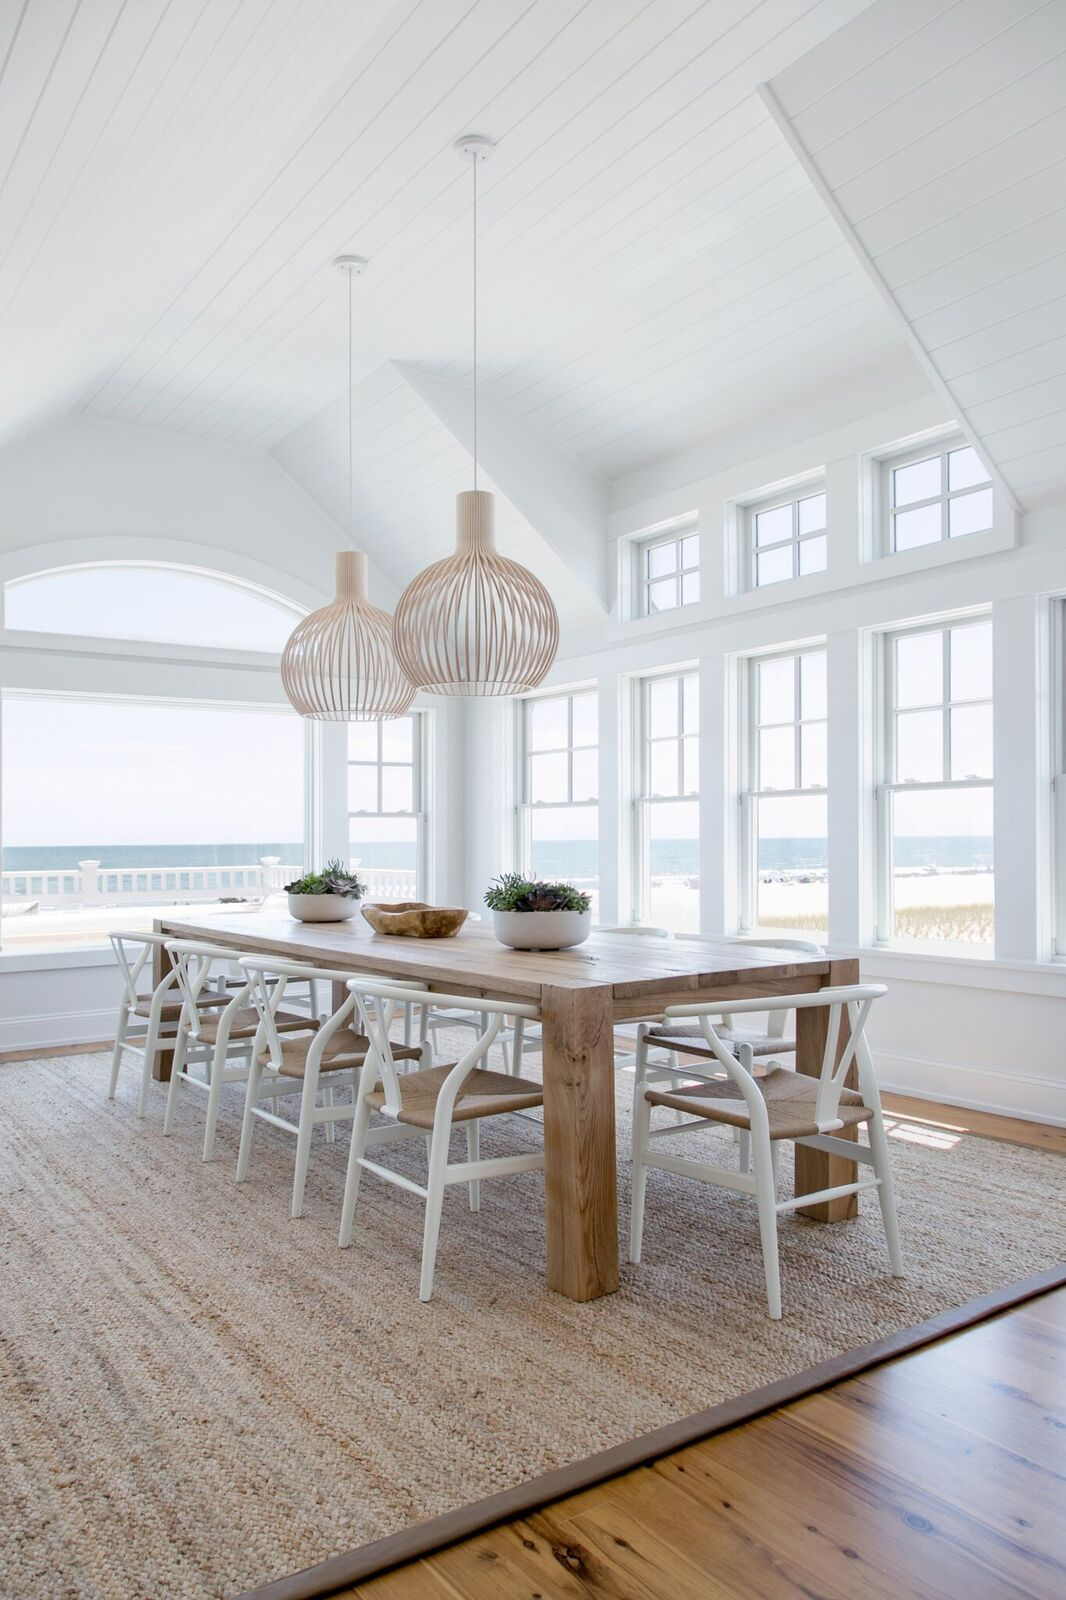 Shop Domino For The Top Brands In Home Decor And Be Inspired By Celebrity Homes And Famous Interior Designers Beach House Dining Room Dining Room Design Home